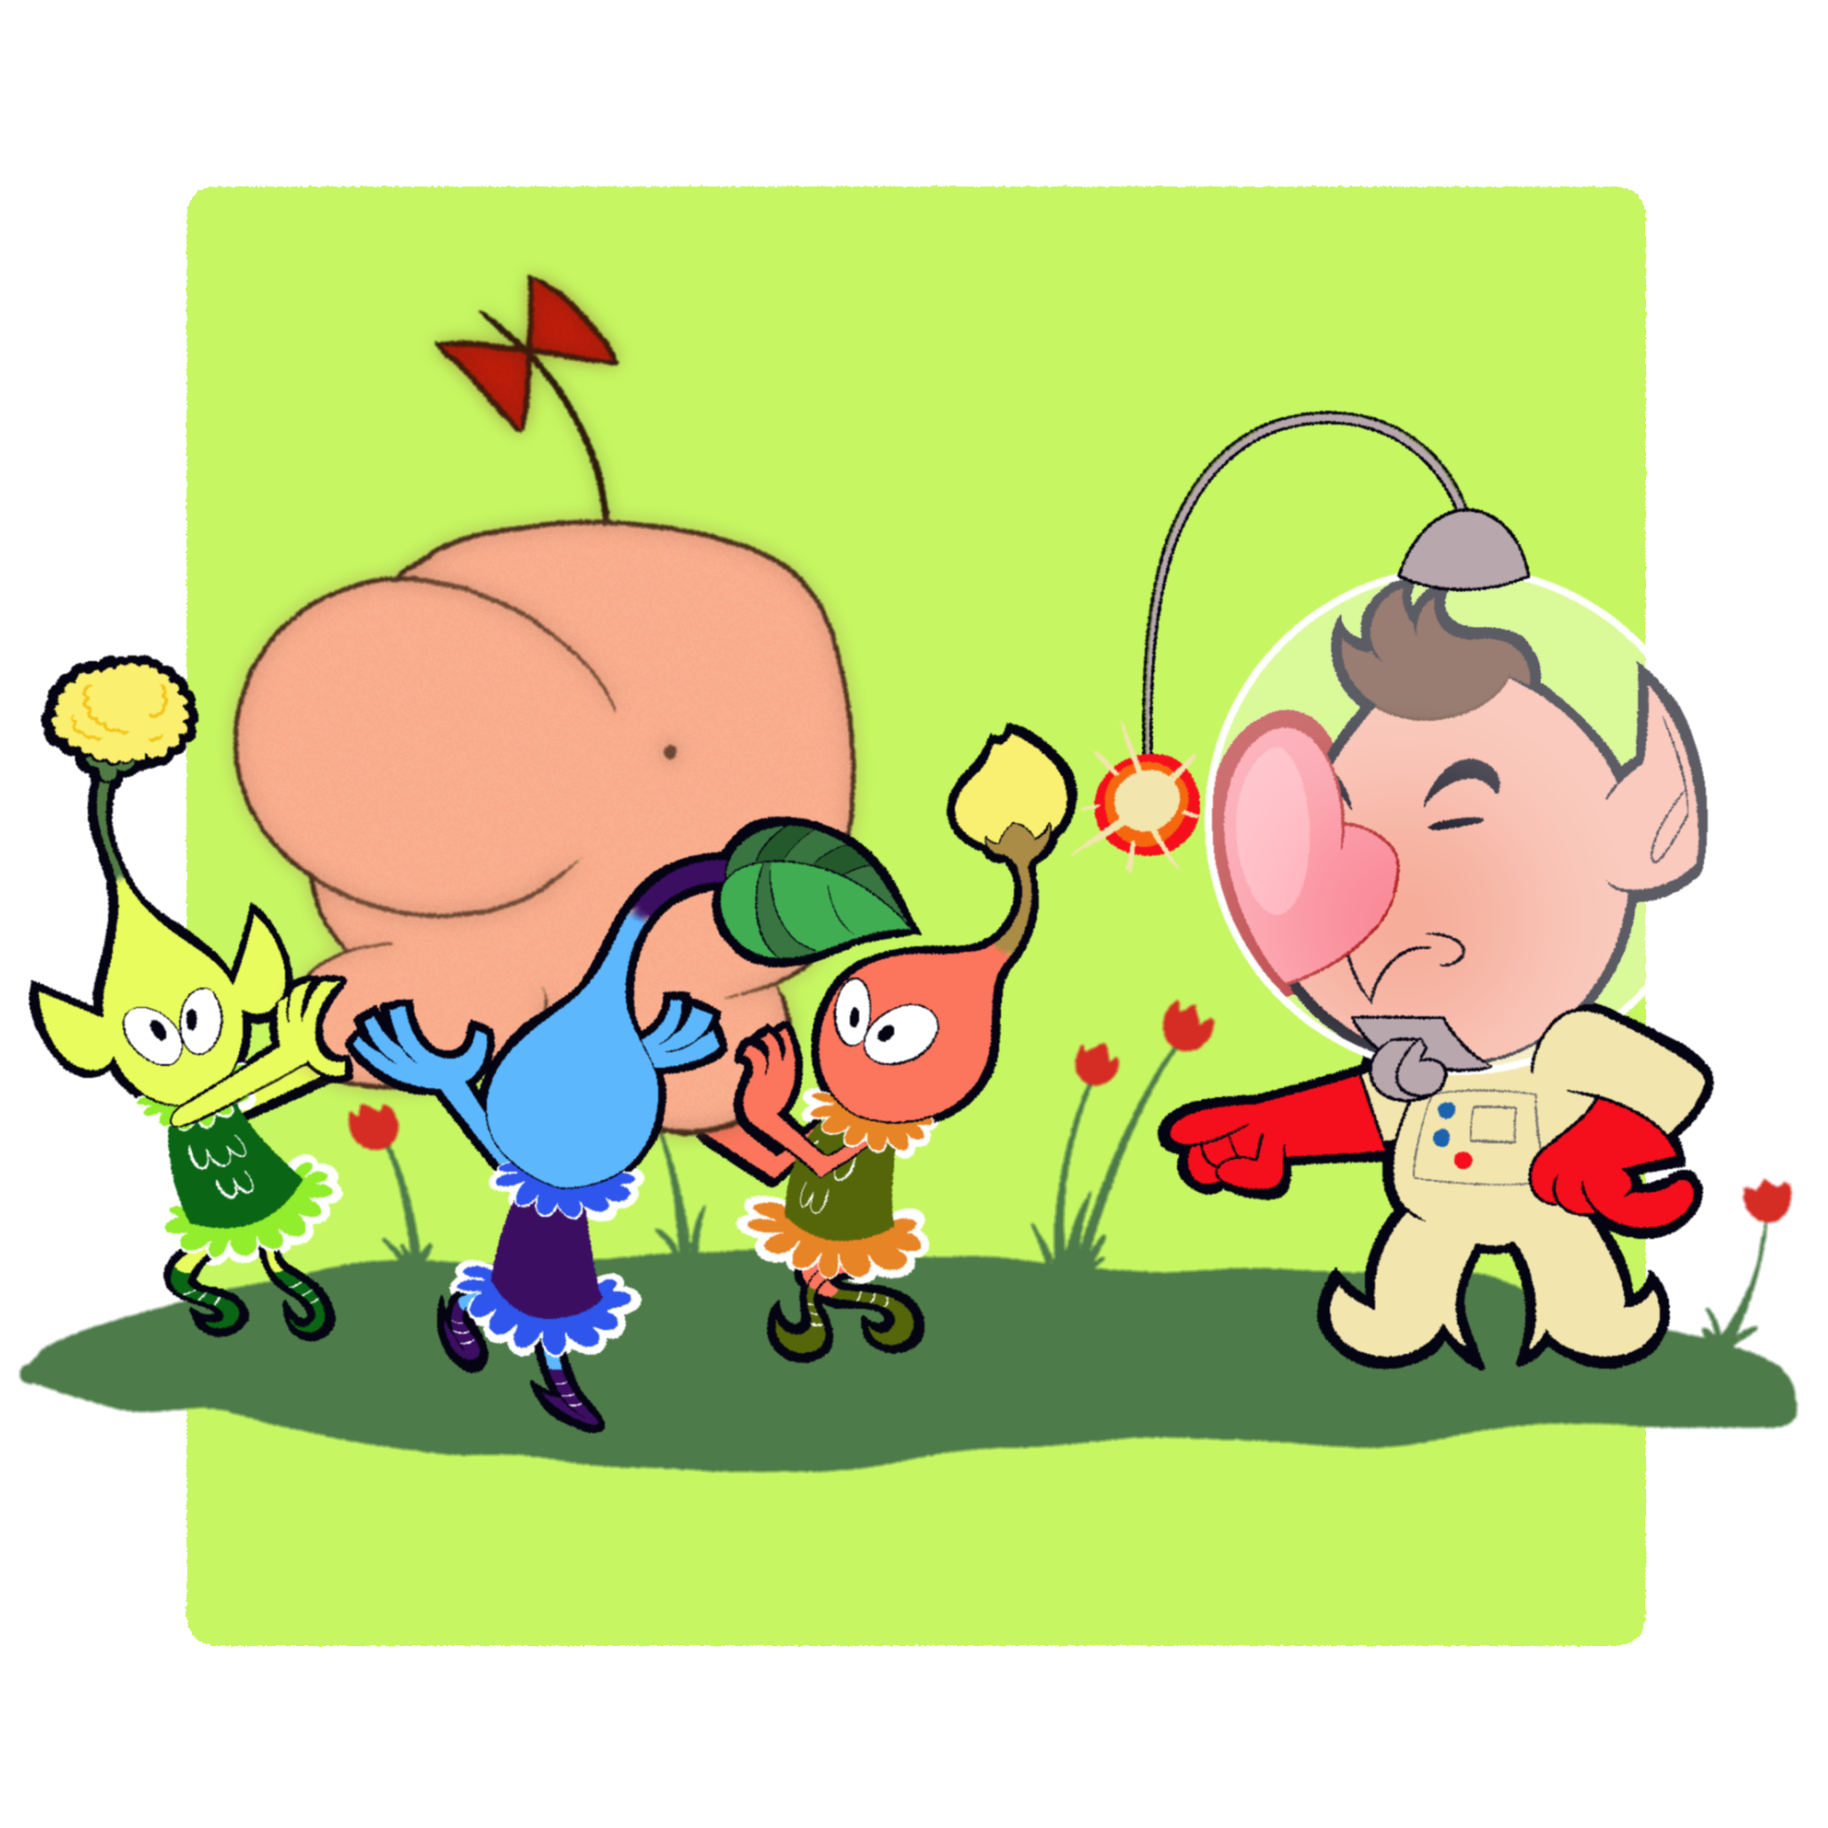 Fighter 40: Pikmin and Olimar